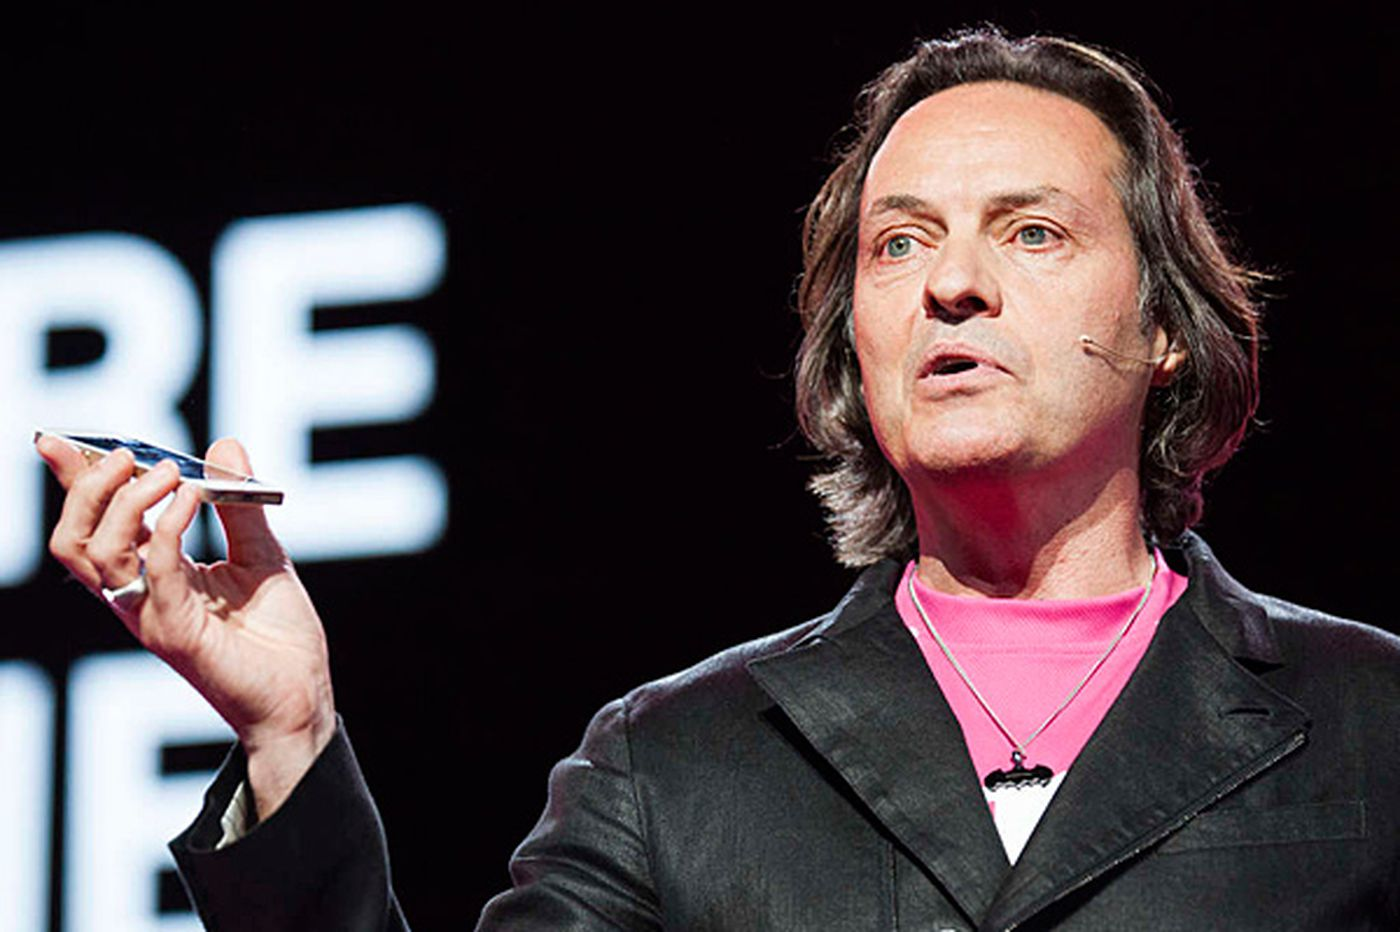 T-Mobile executives were Trump customers while seeking deal approval